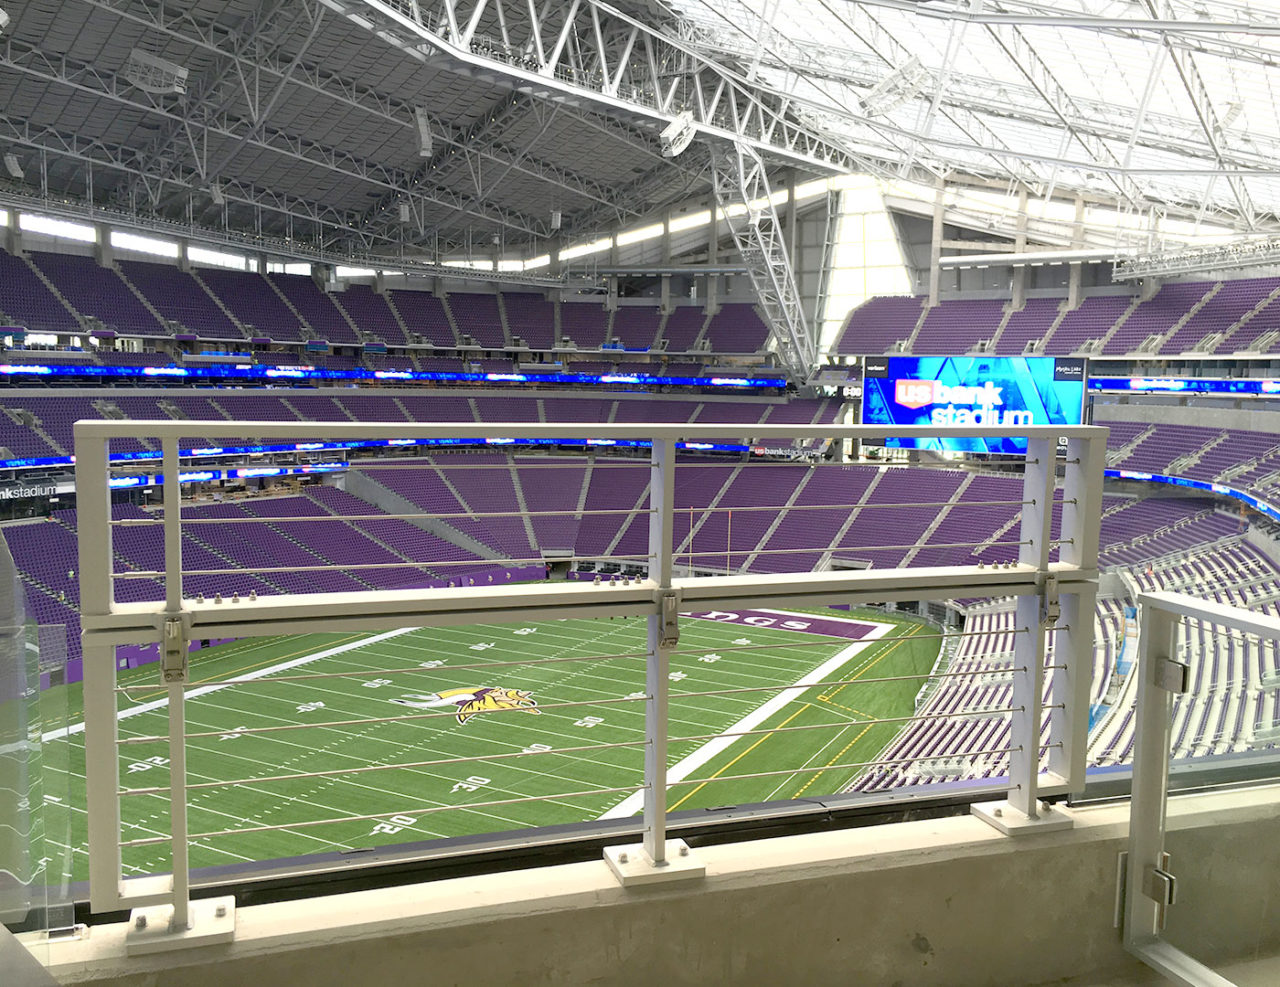 Drop down camera bay railing at U. S. Bank Stadium